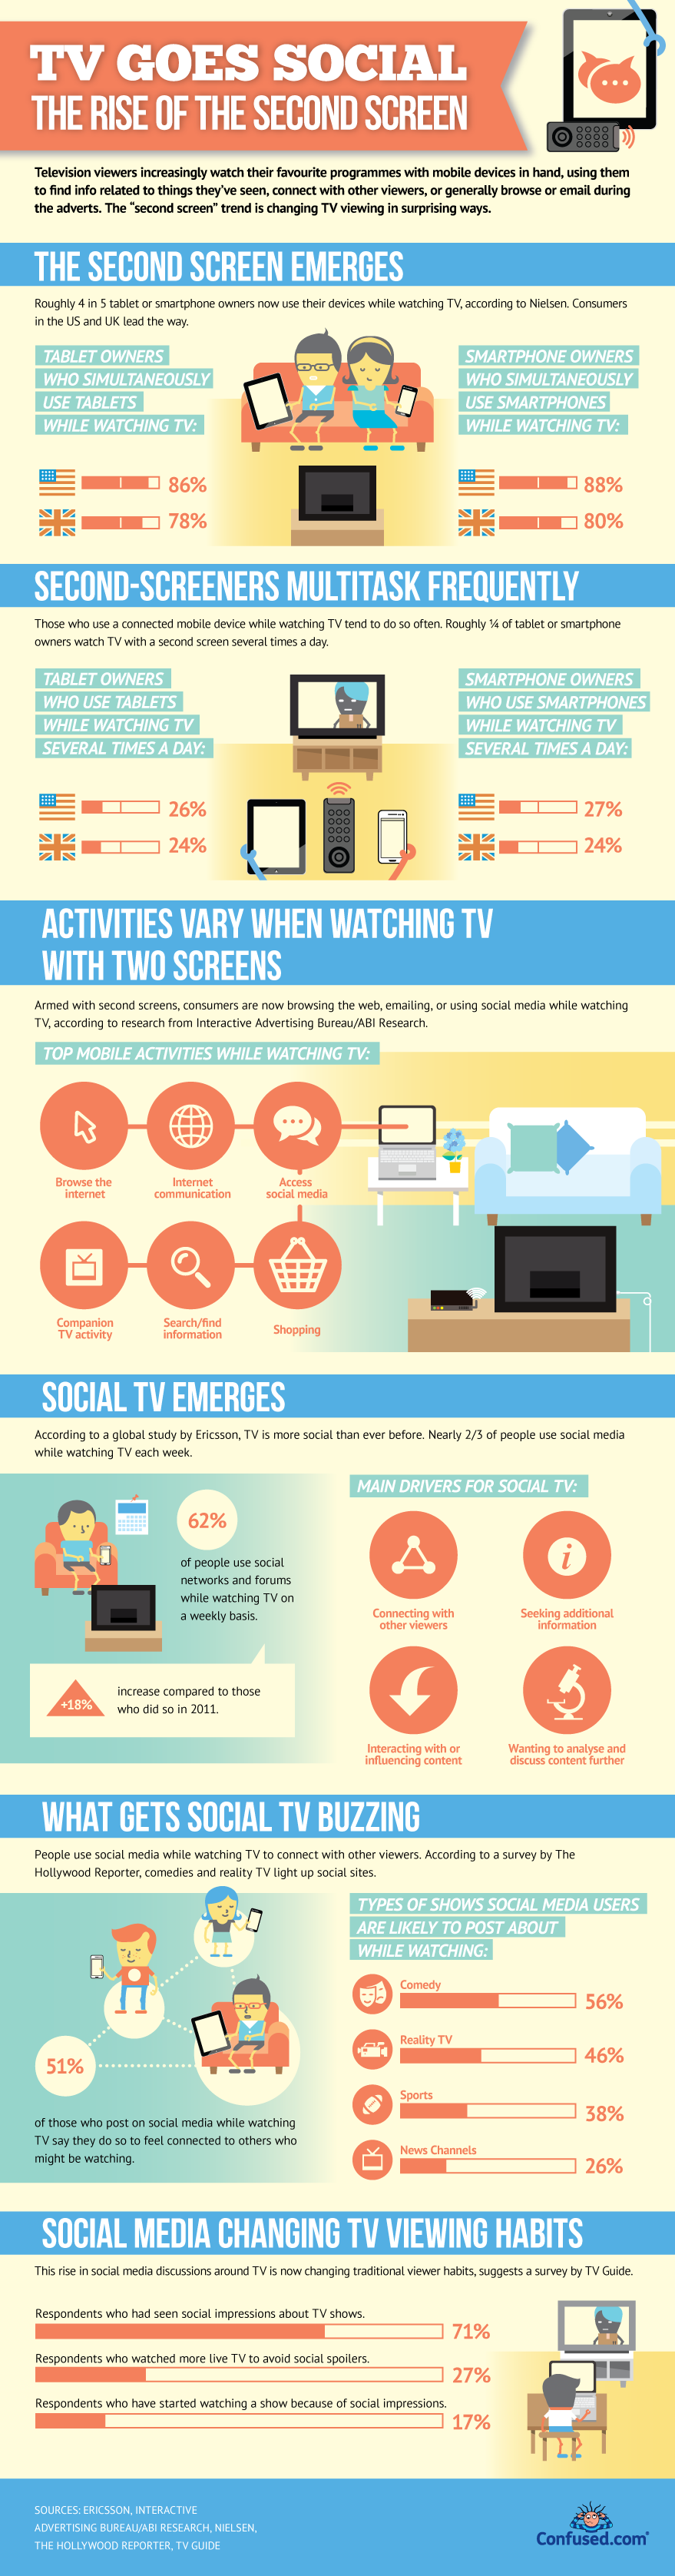 TV goes social The rise of the second screen